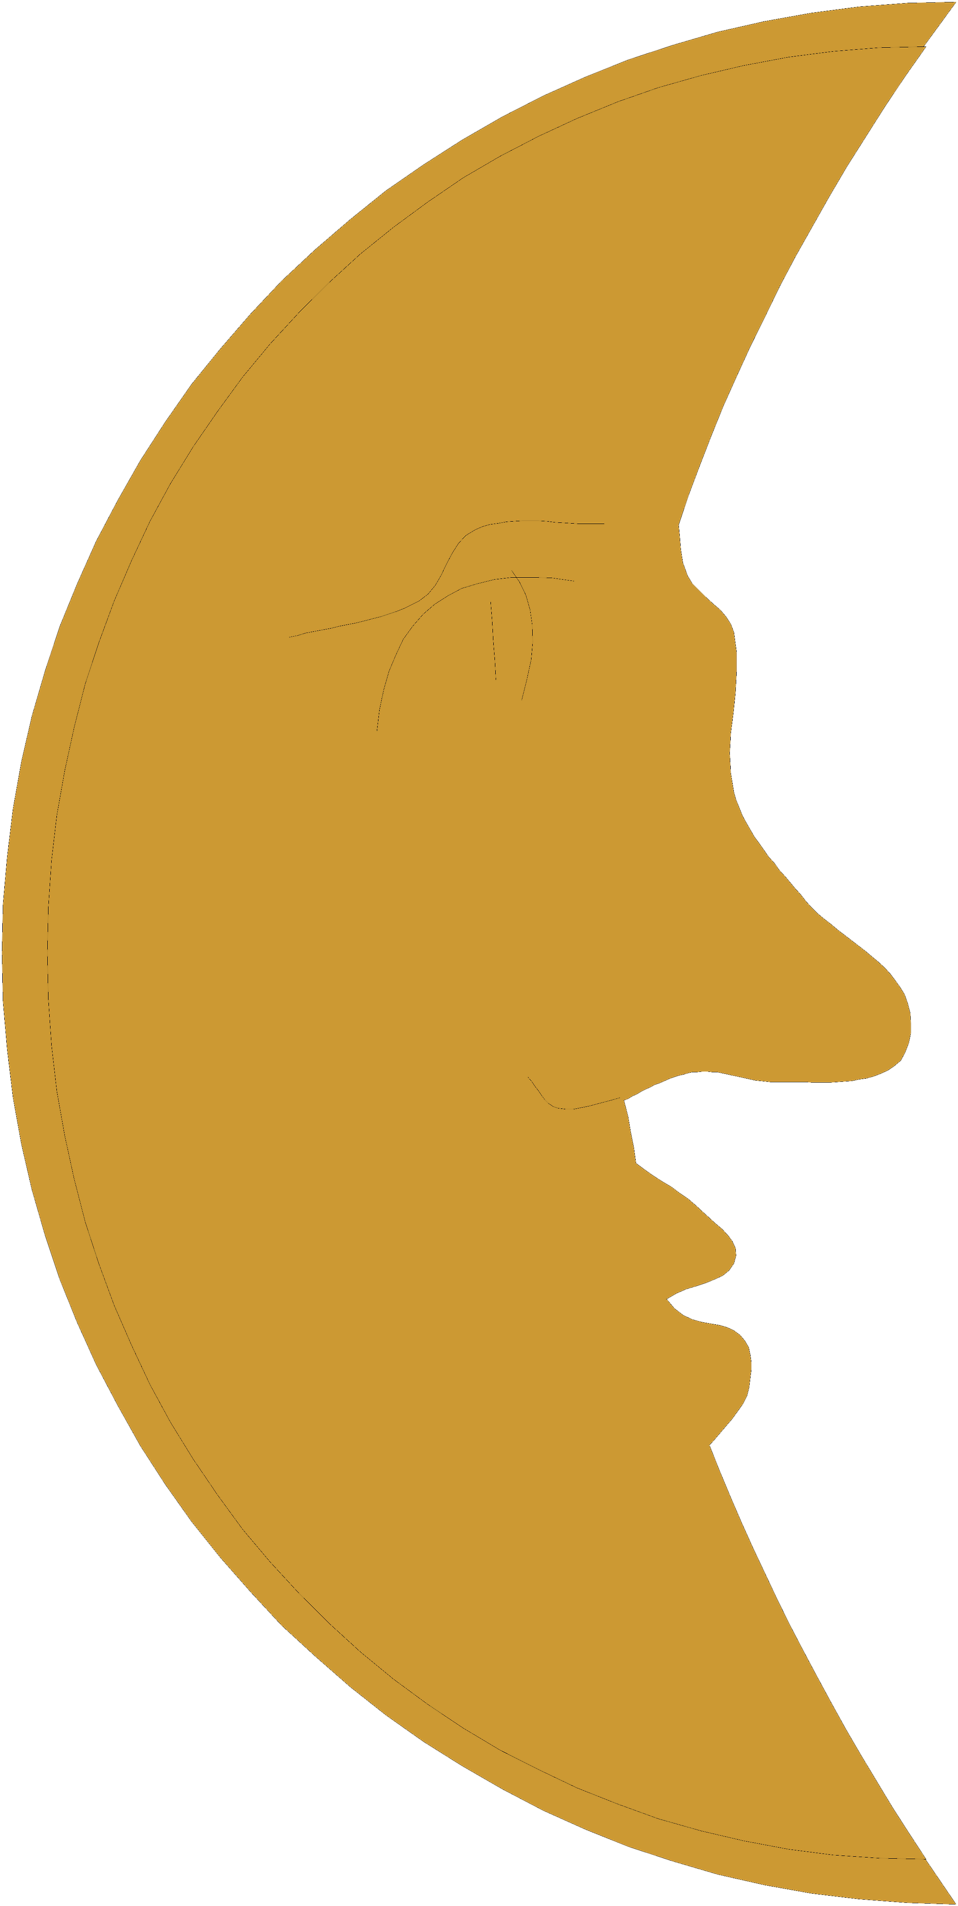 Illustration of a face on a crescent moon : Free Stock Photo